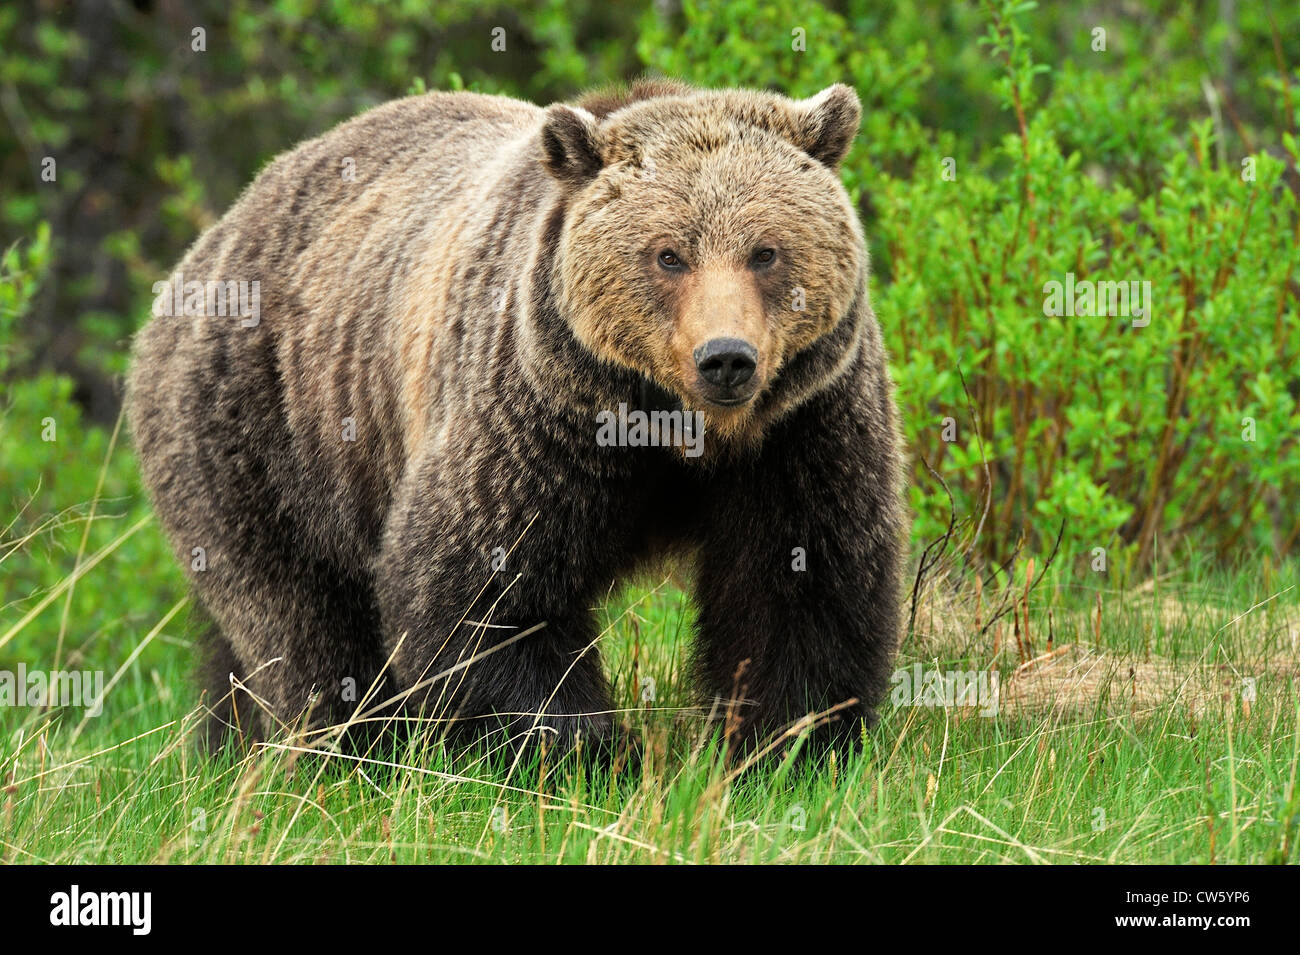 A female grizzly bear - Stock Image